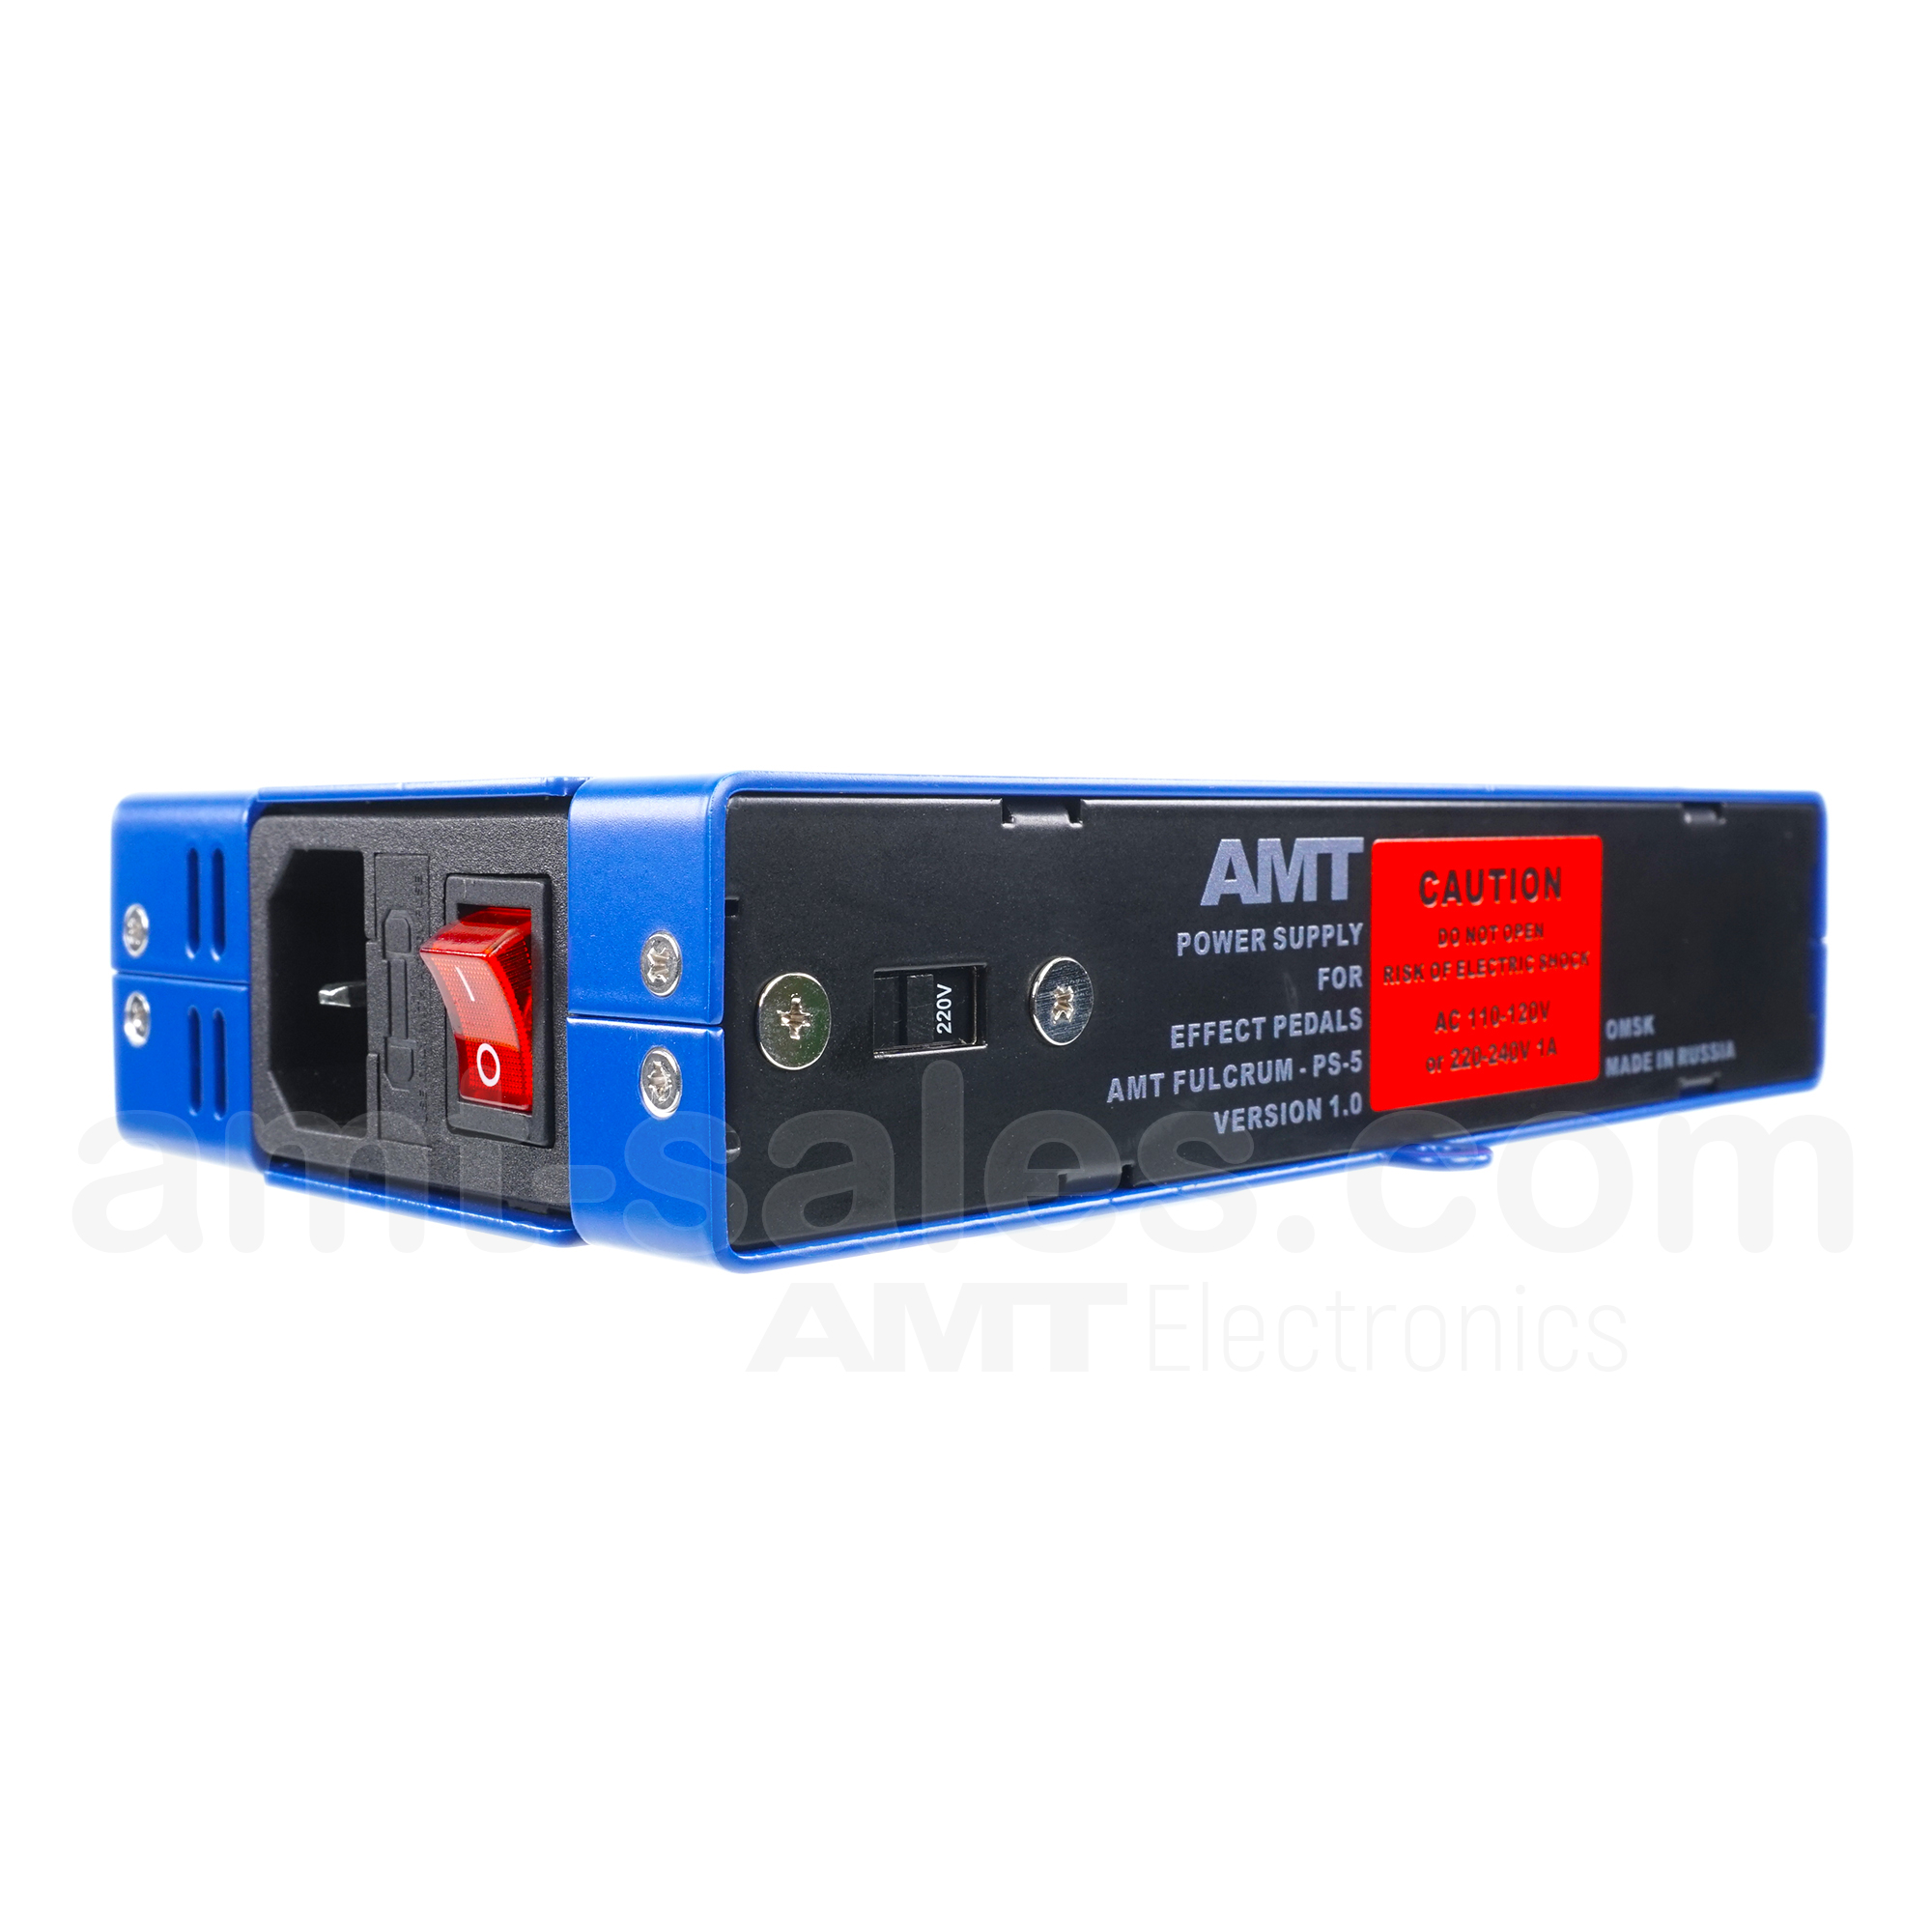 AMT Fulcrum PS-518V - linear power supply